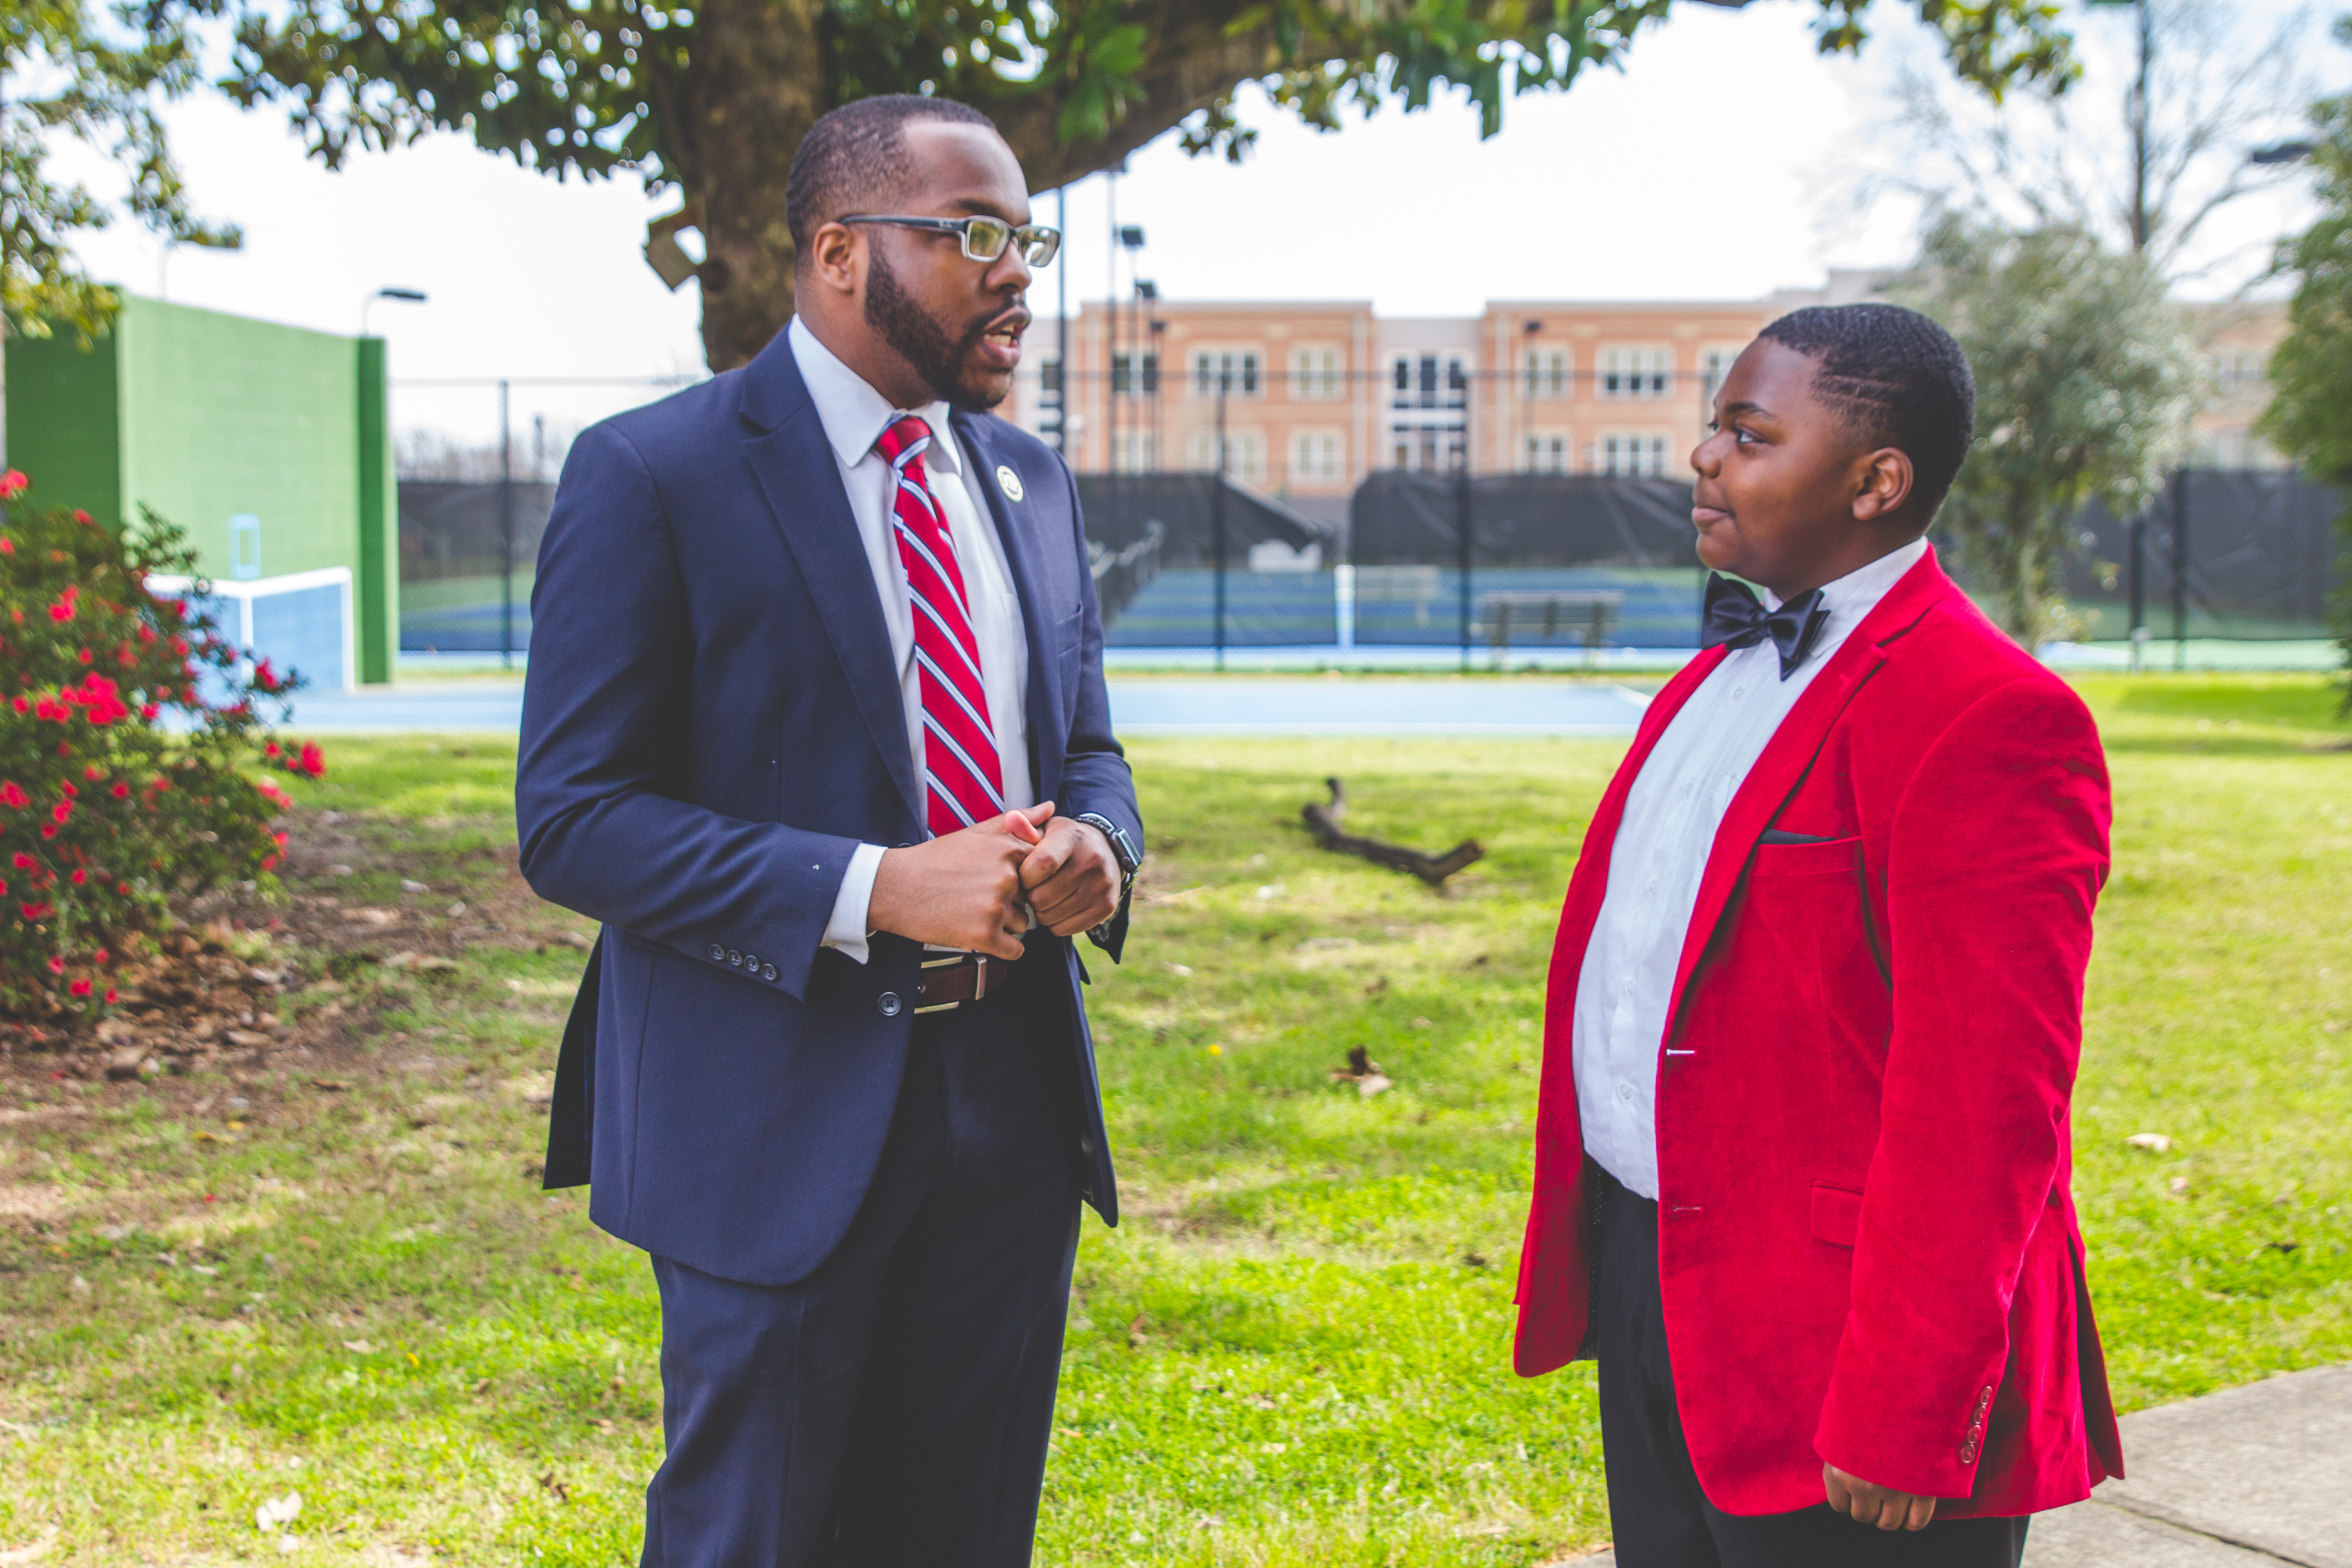 Juawn Jackson speaks with a local grade school student